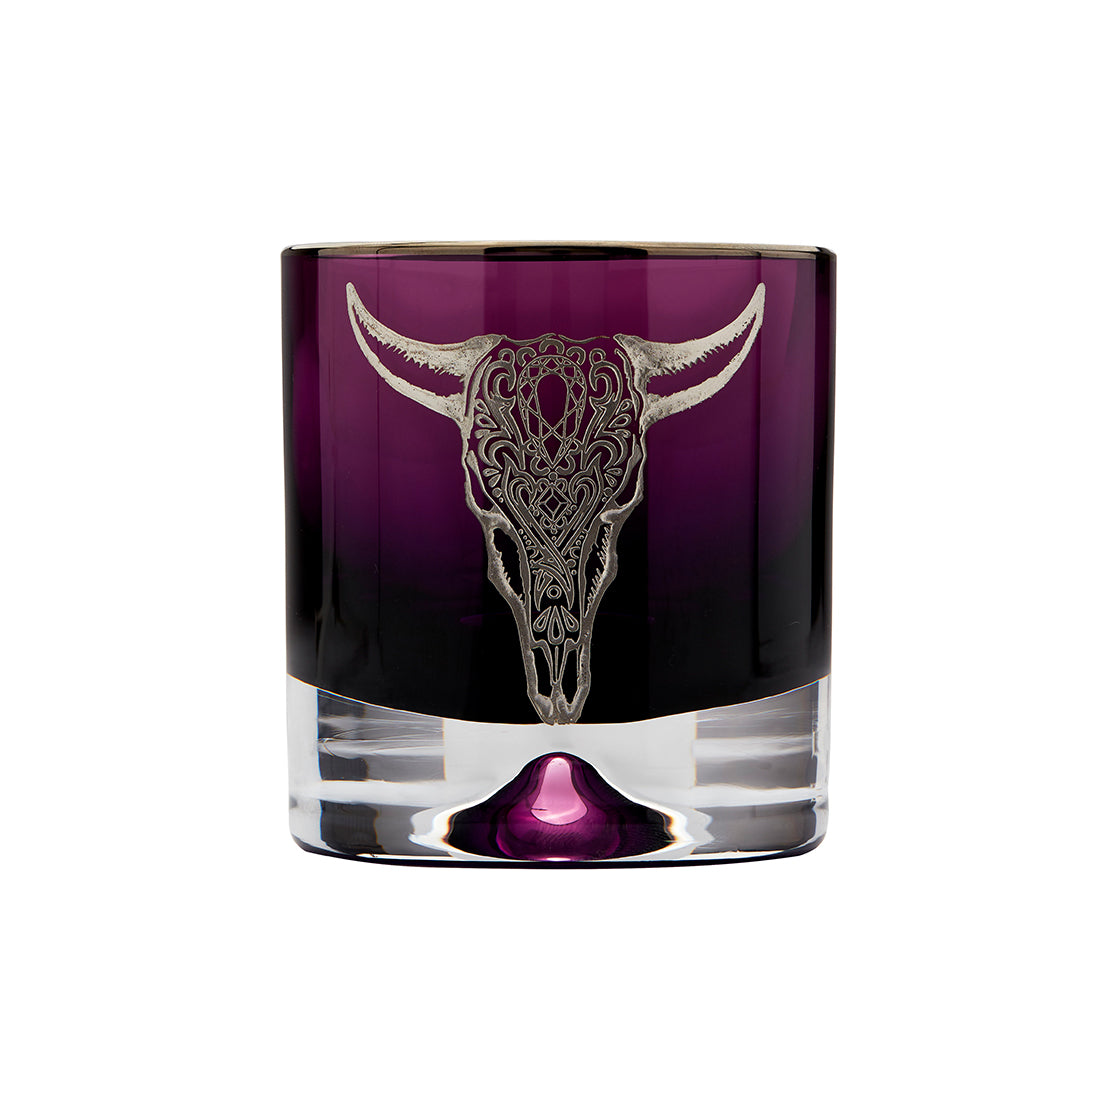 Stephen Webster - Tequila Lore Cow Tumbler Set